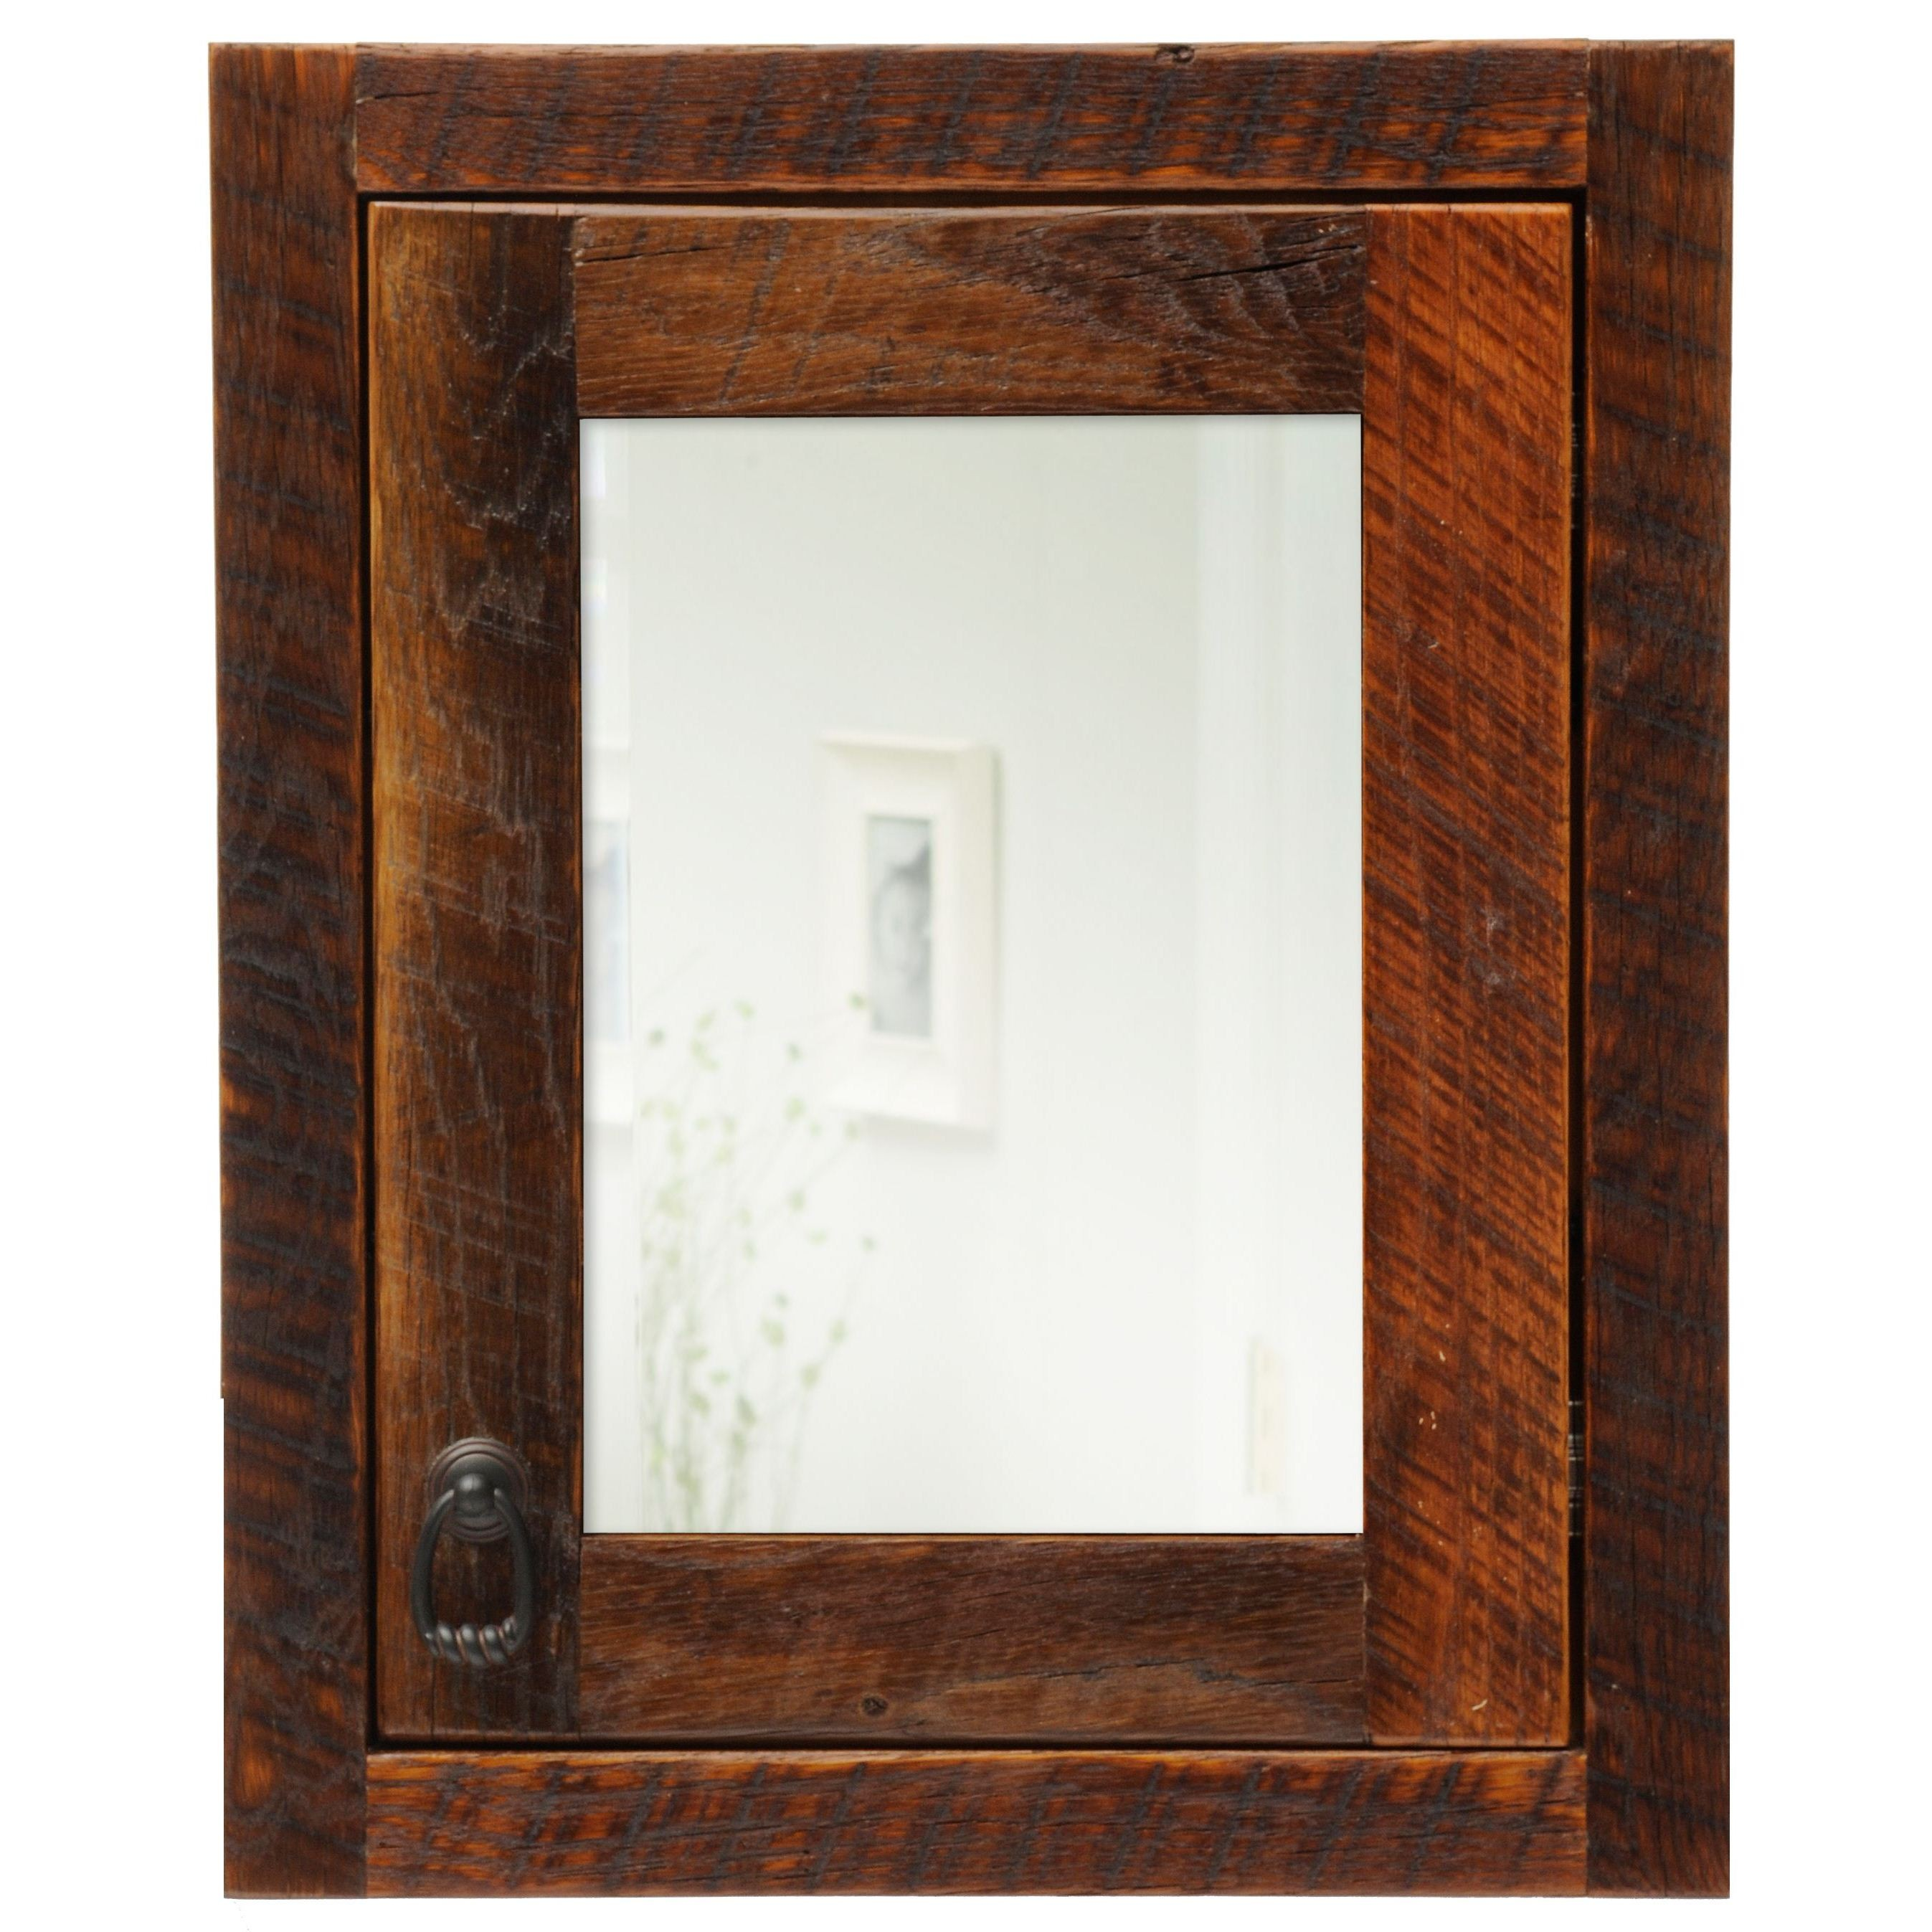 Barnwood right hinged inset medicine cabinet from fireside for Barnwood medicine cabinet